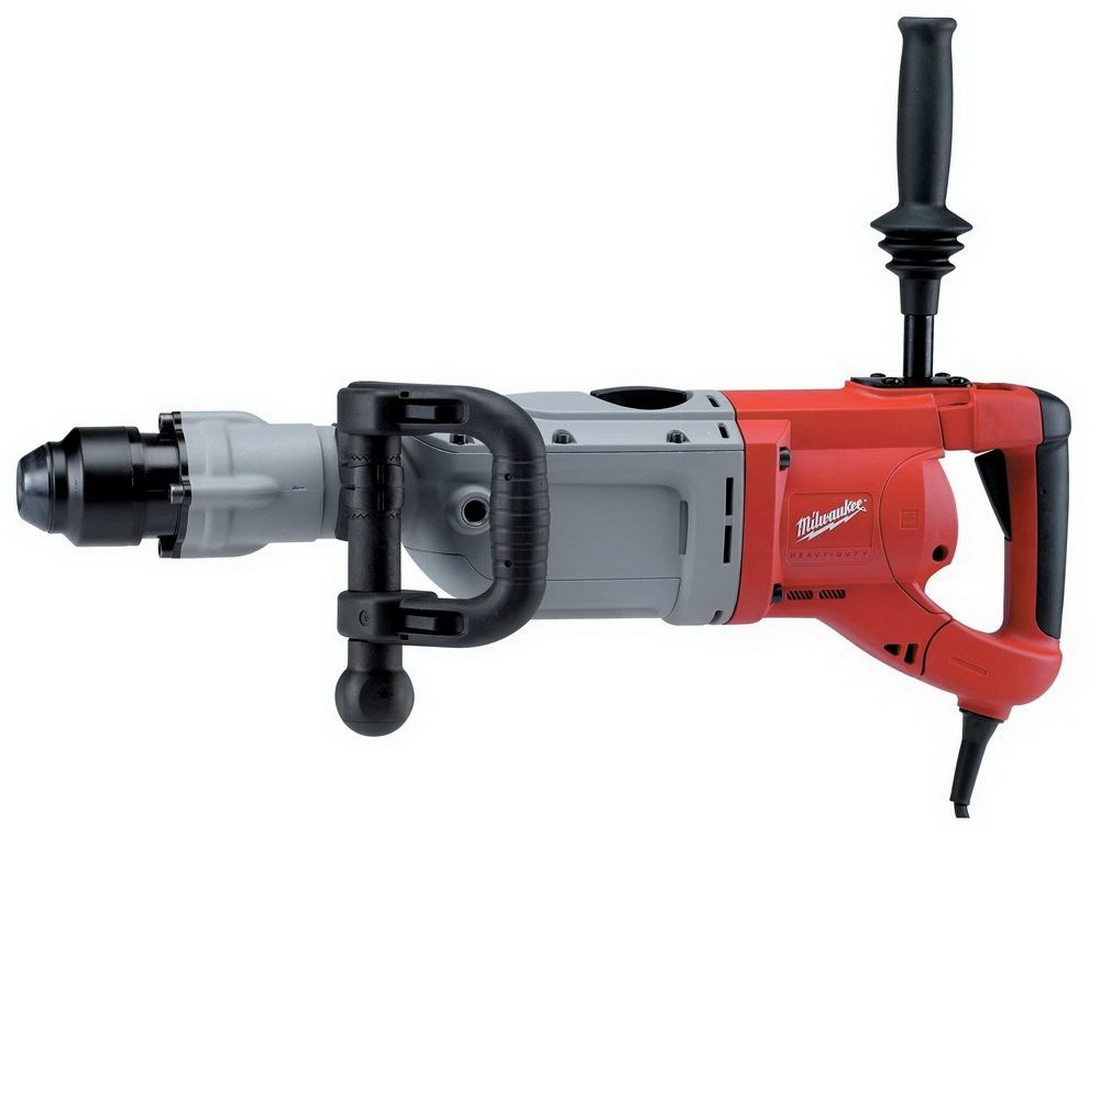 SDS Max 2 Mode Rotary Hammer 1700W